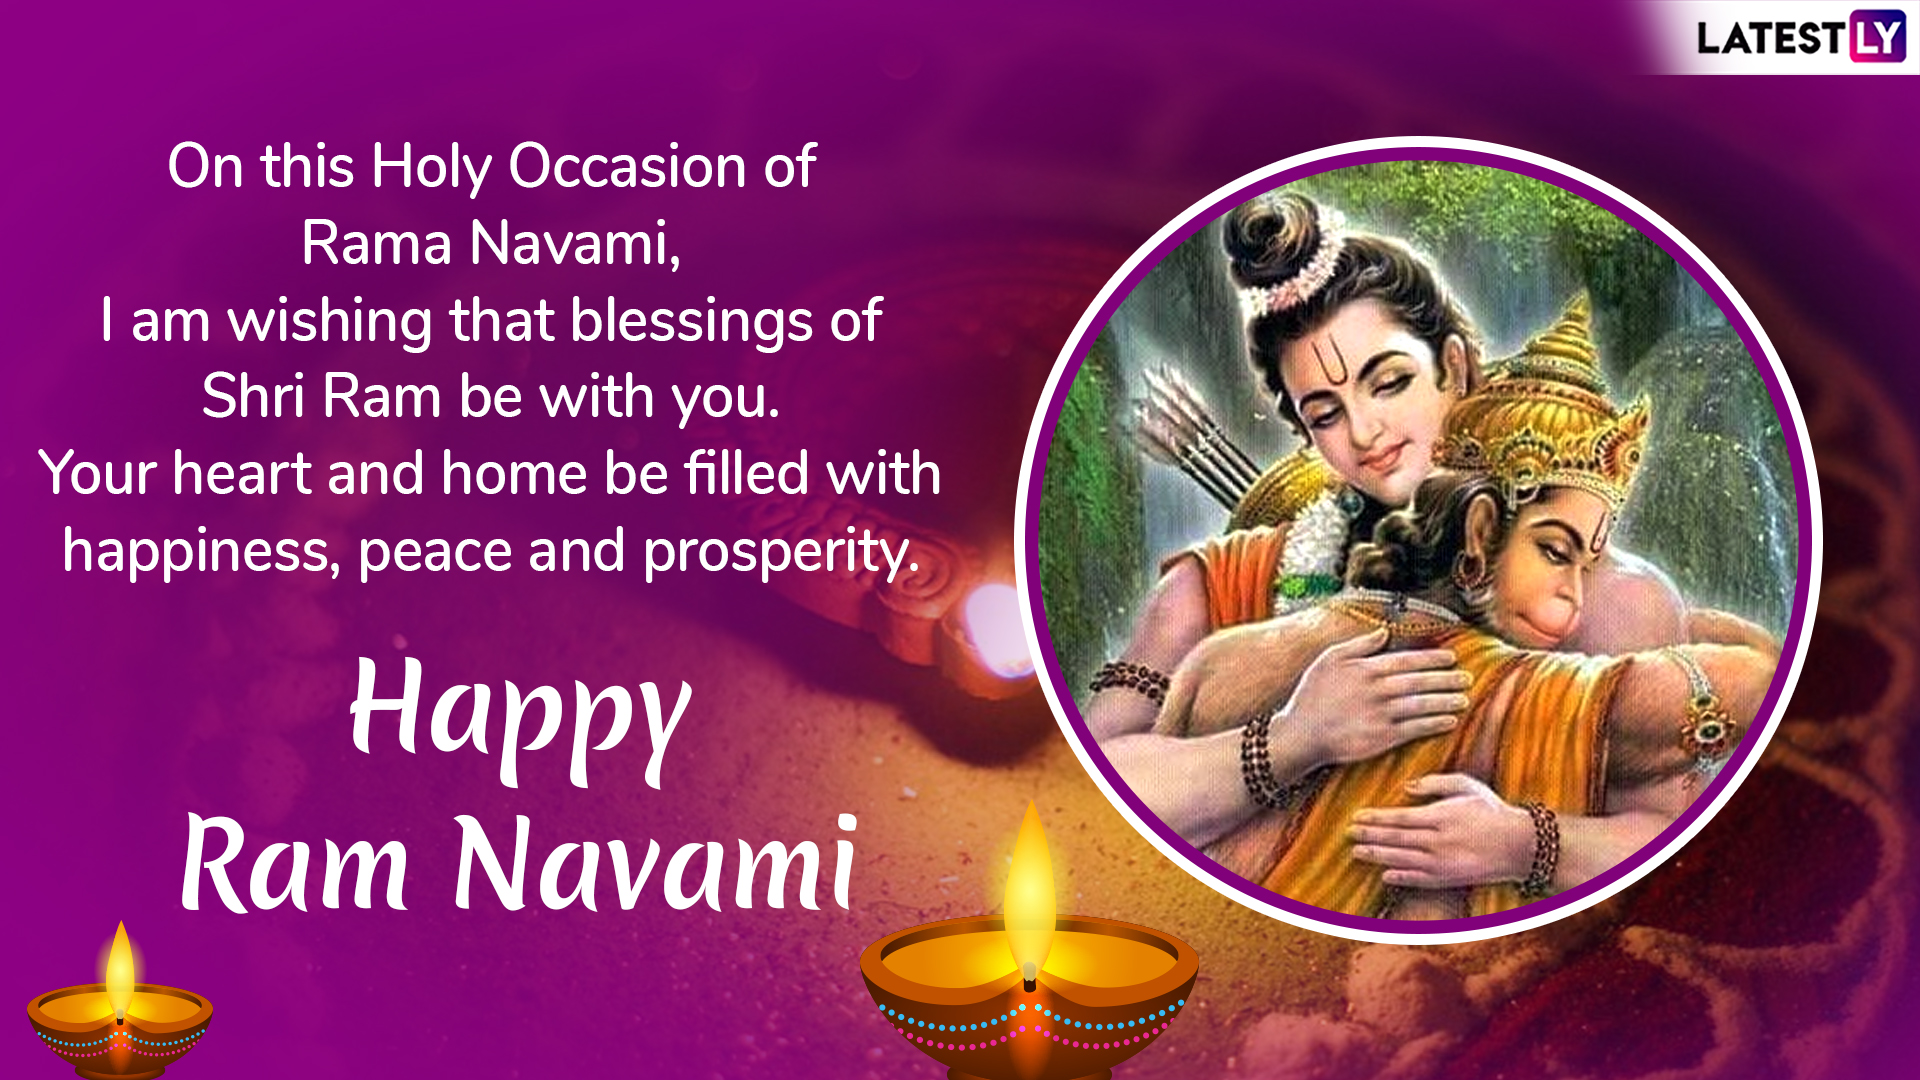 Ram Navami 2019 Wishes Greetings Whatsapp Stickers Gif Image